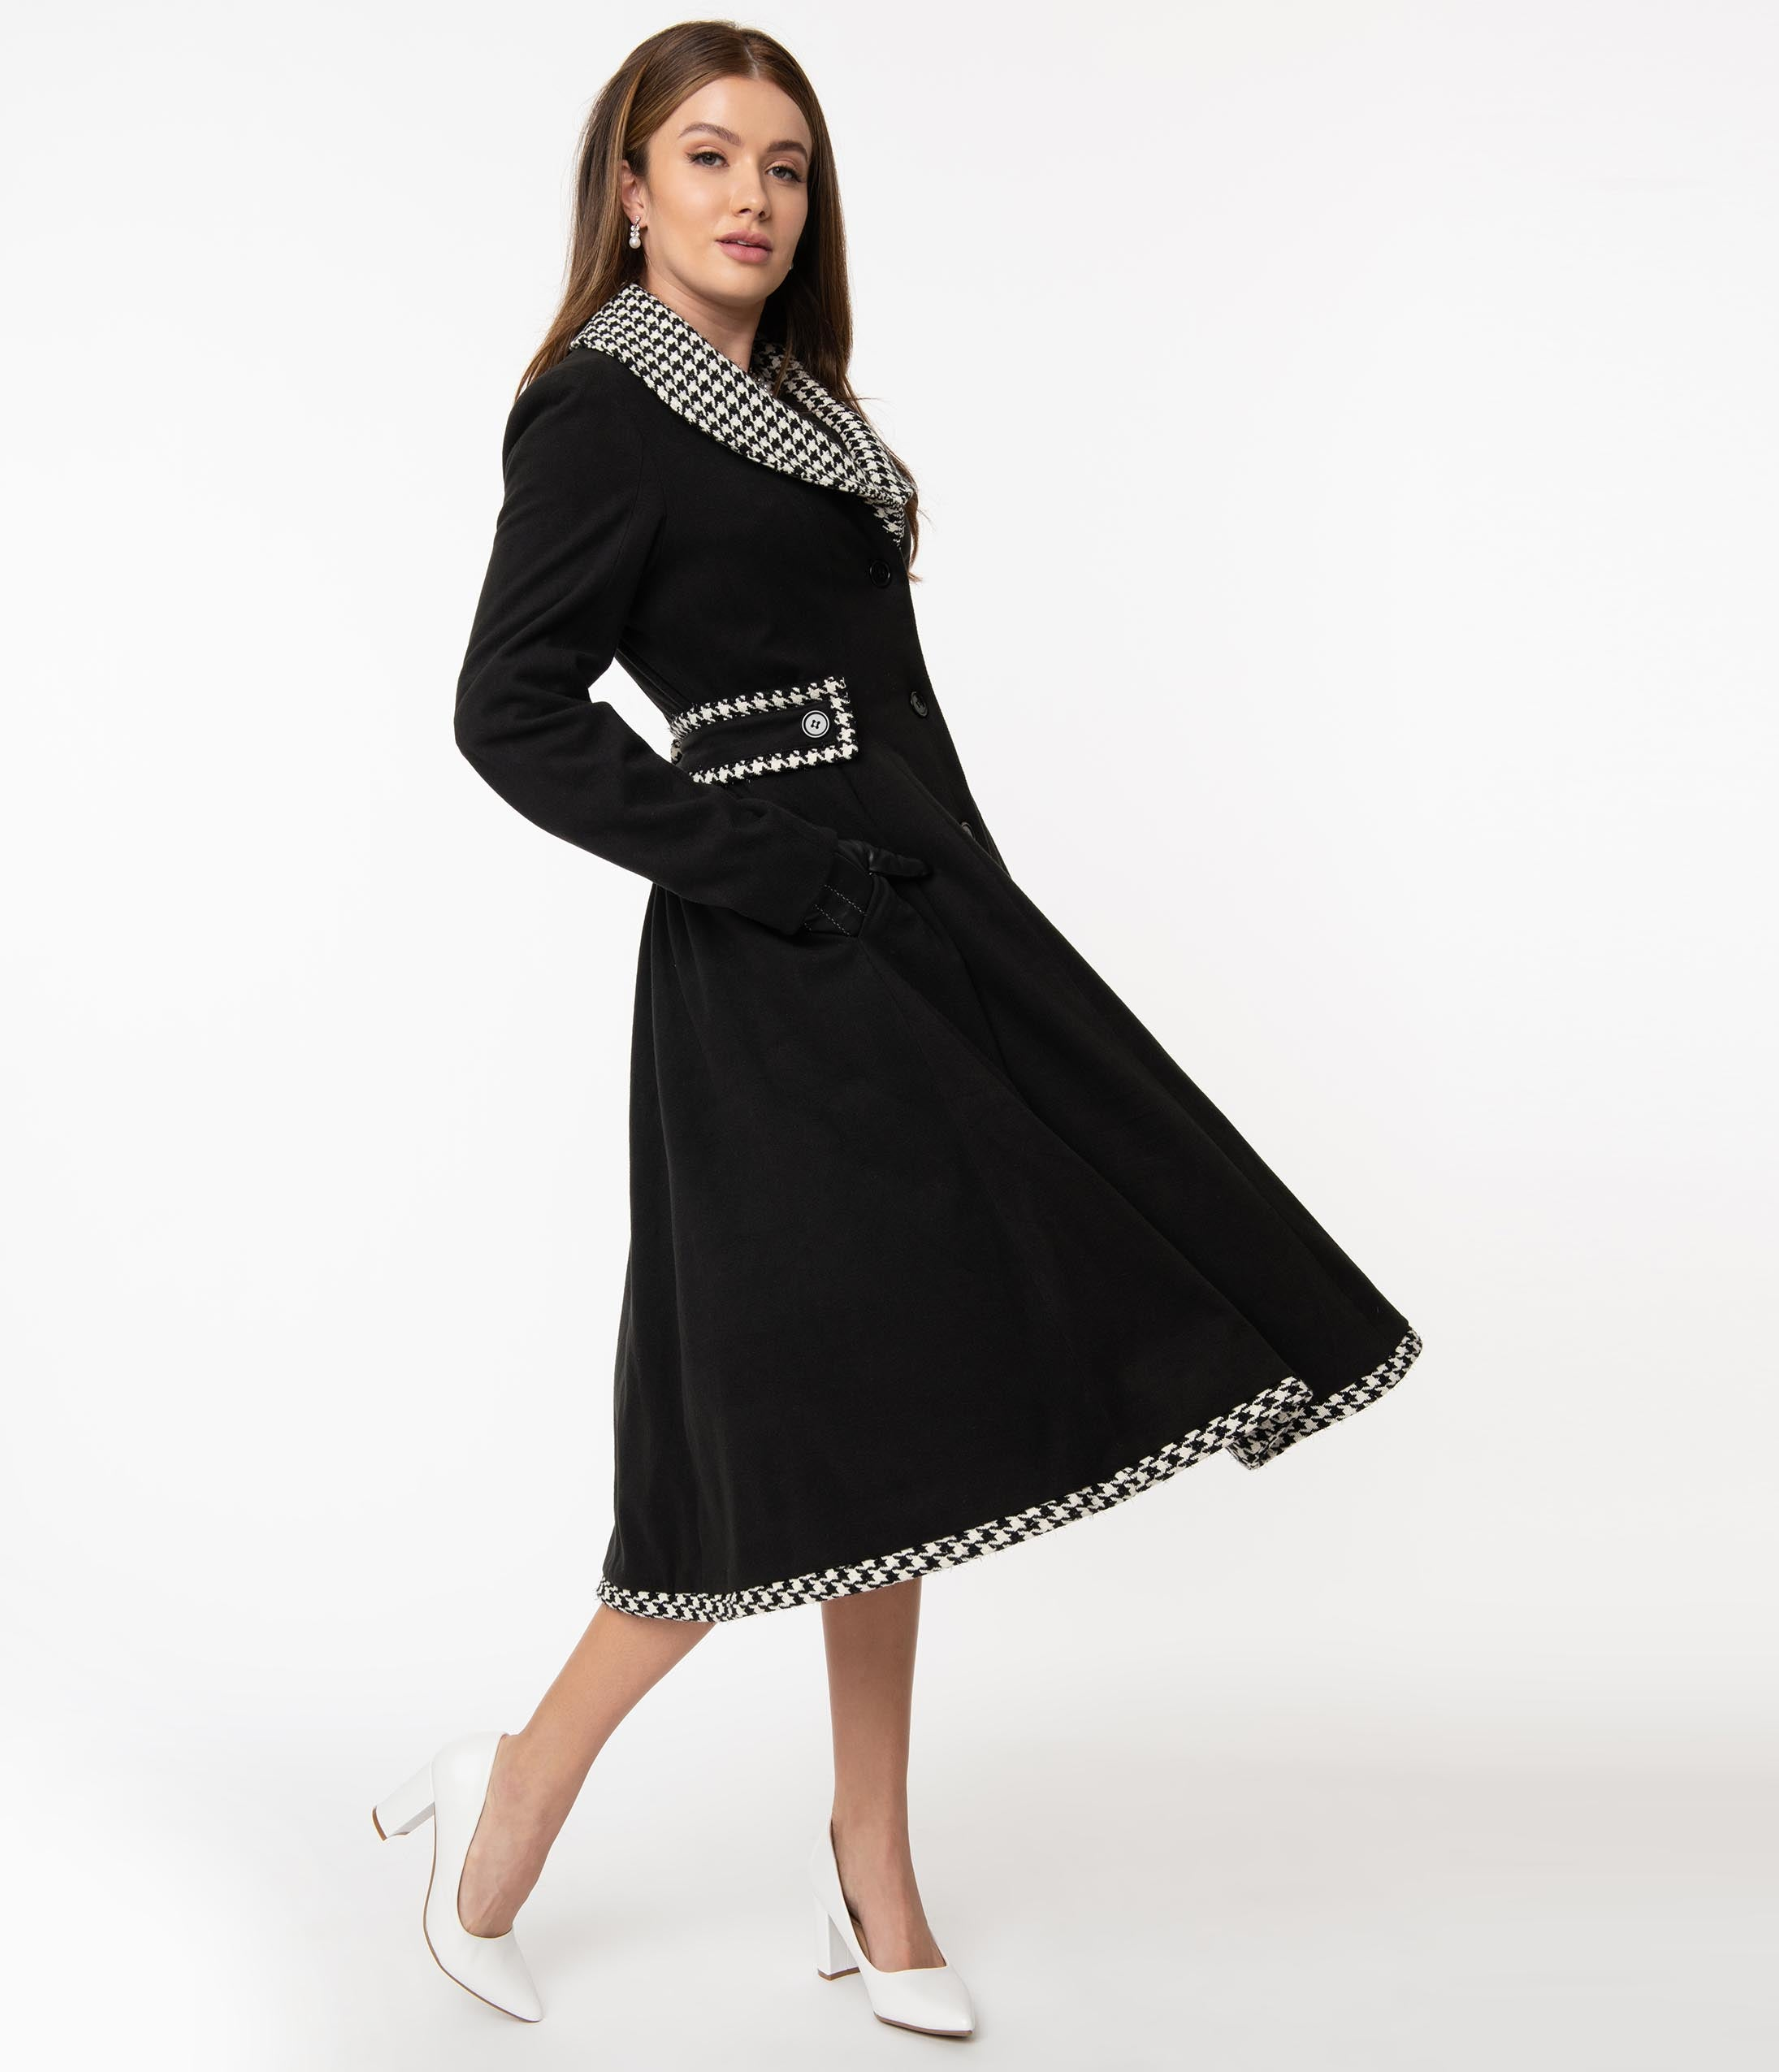 1950s Jackets, Coats, Bolero | Swing, Pin Up, Rockabilly Unique Vintage Black  Houndstooth Parkview Swing Coat $158.00 AT vintagedancer.com